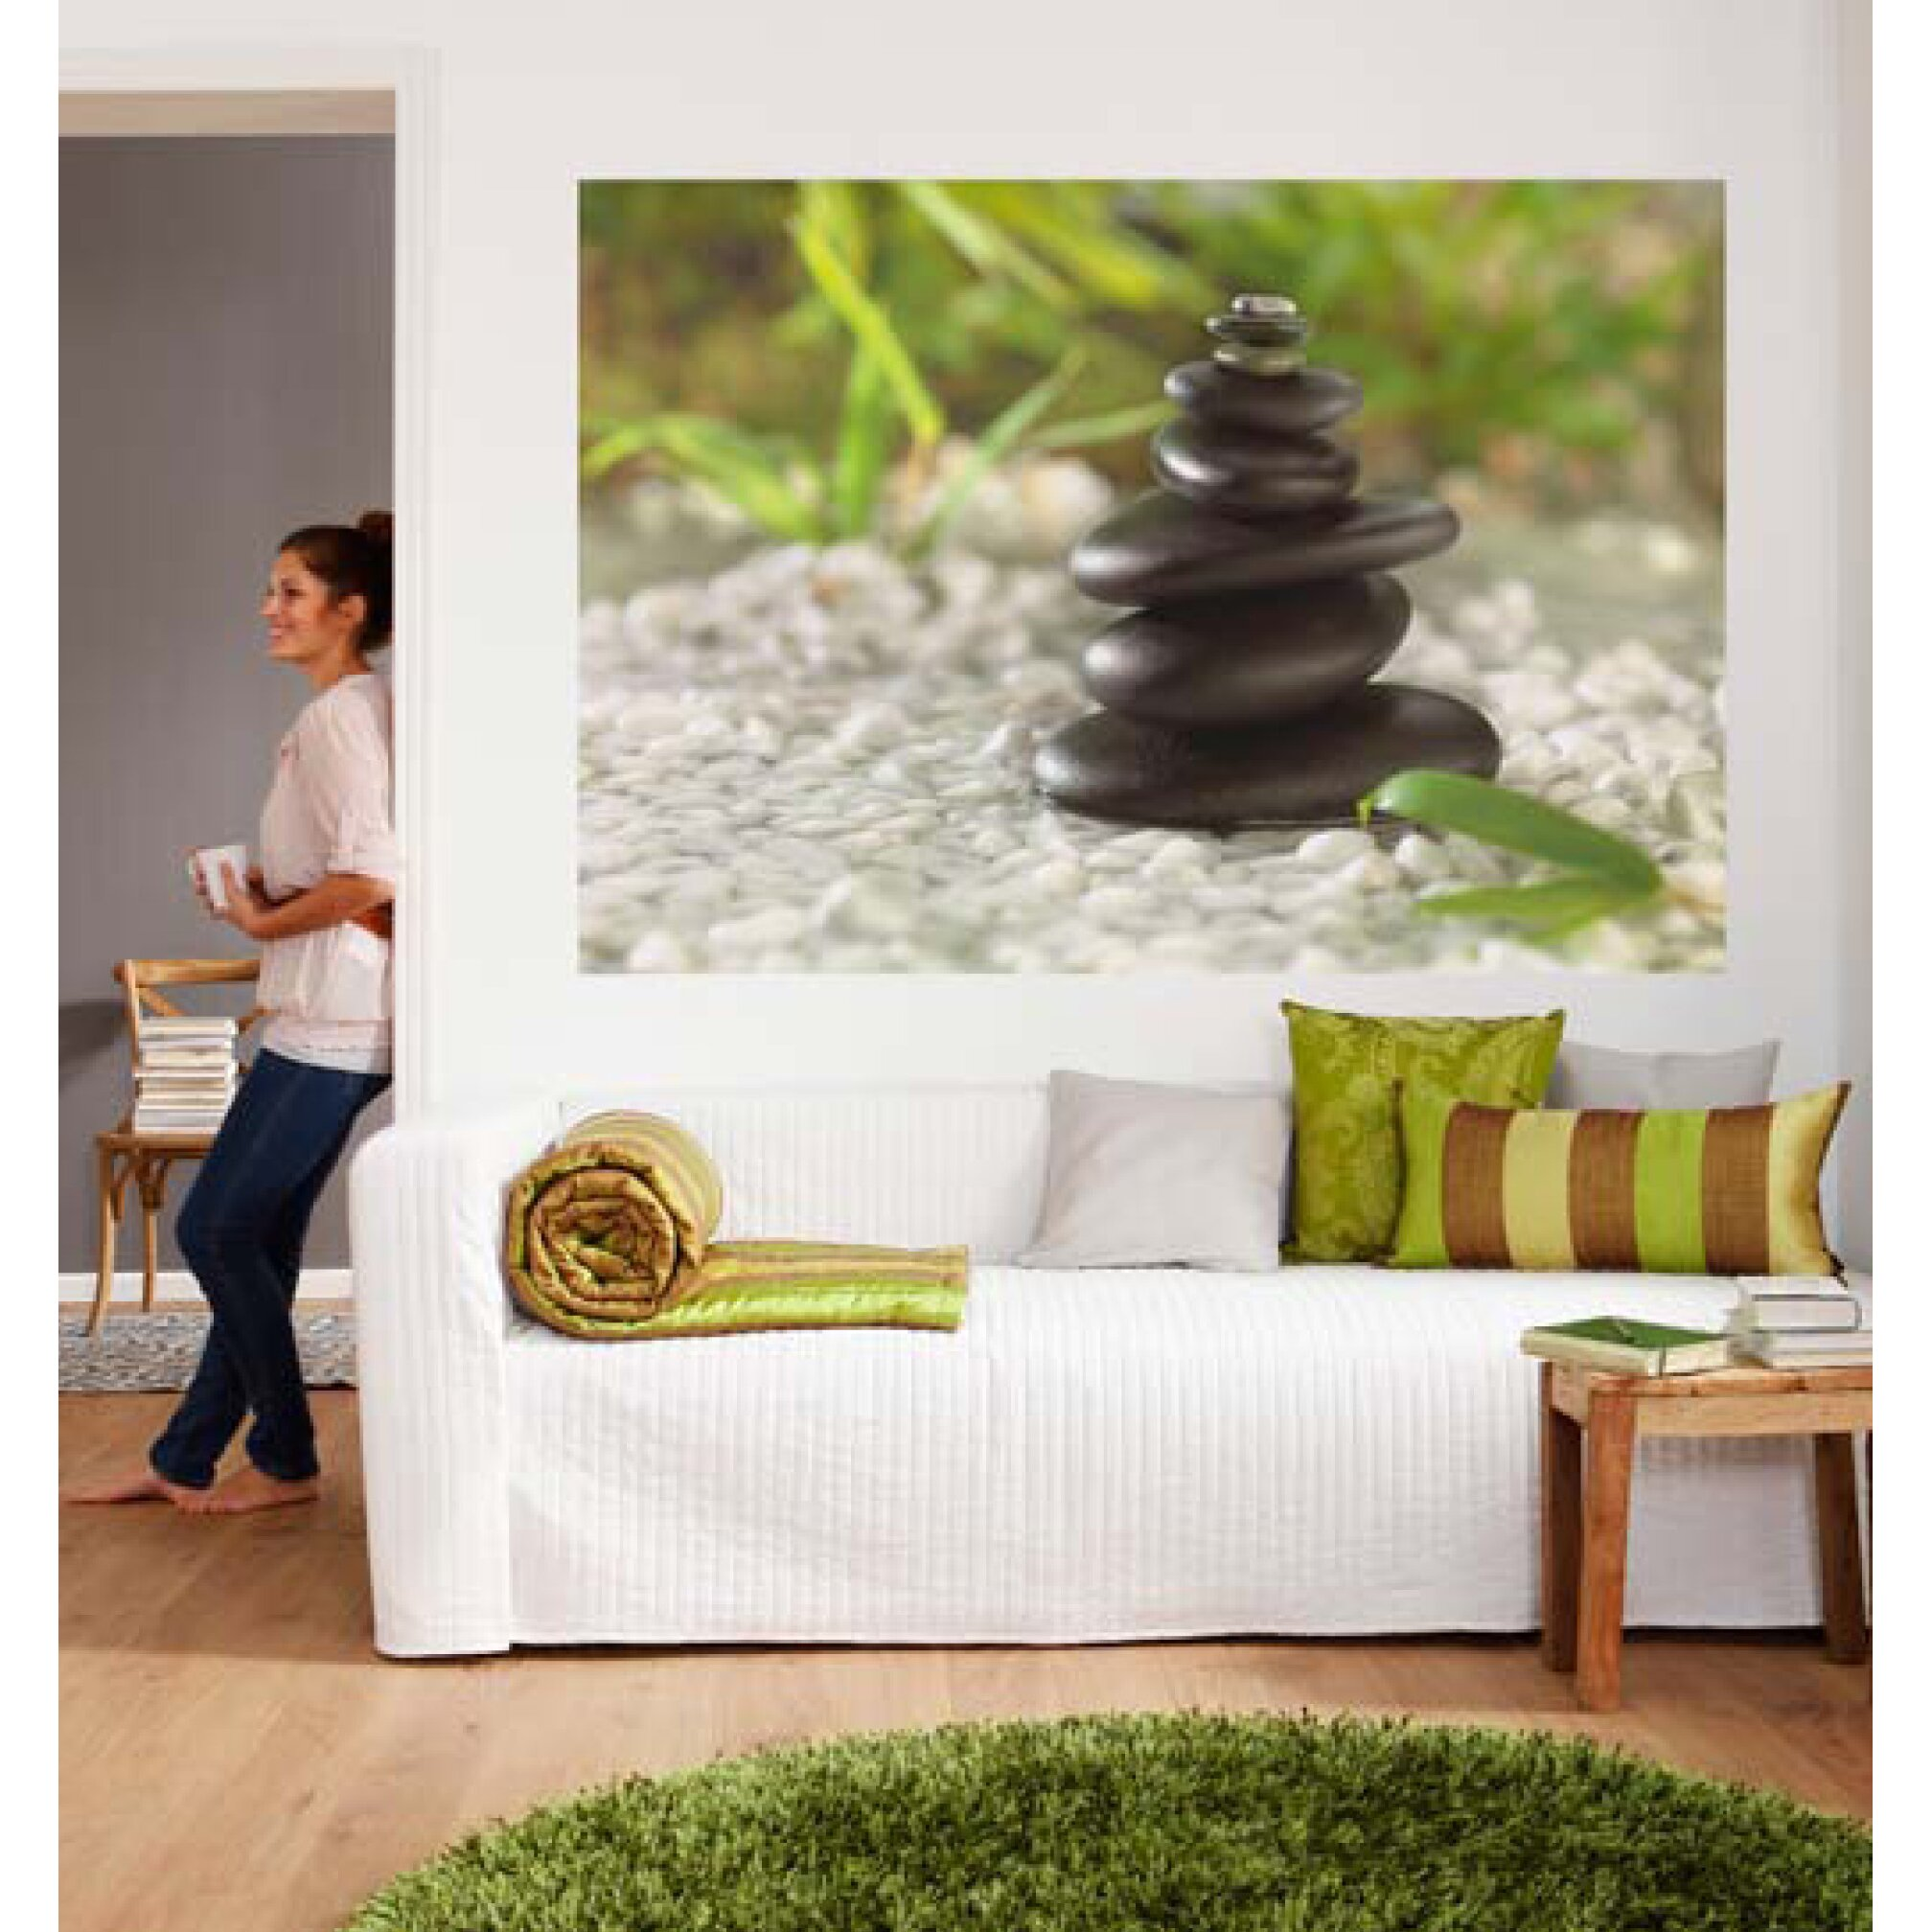 Brewster home fashions komar feng shui wall mural wayfair for Brewster home fashions wall mural